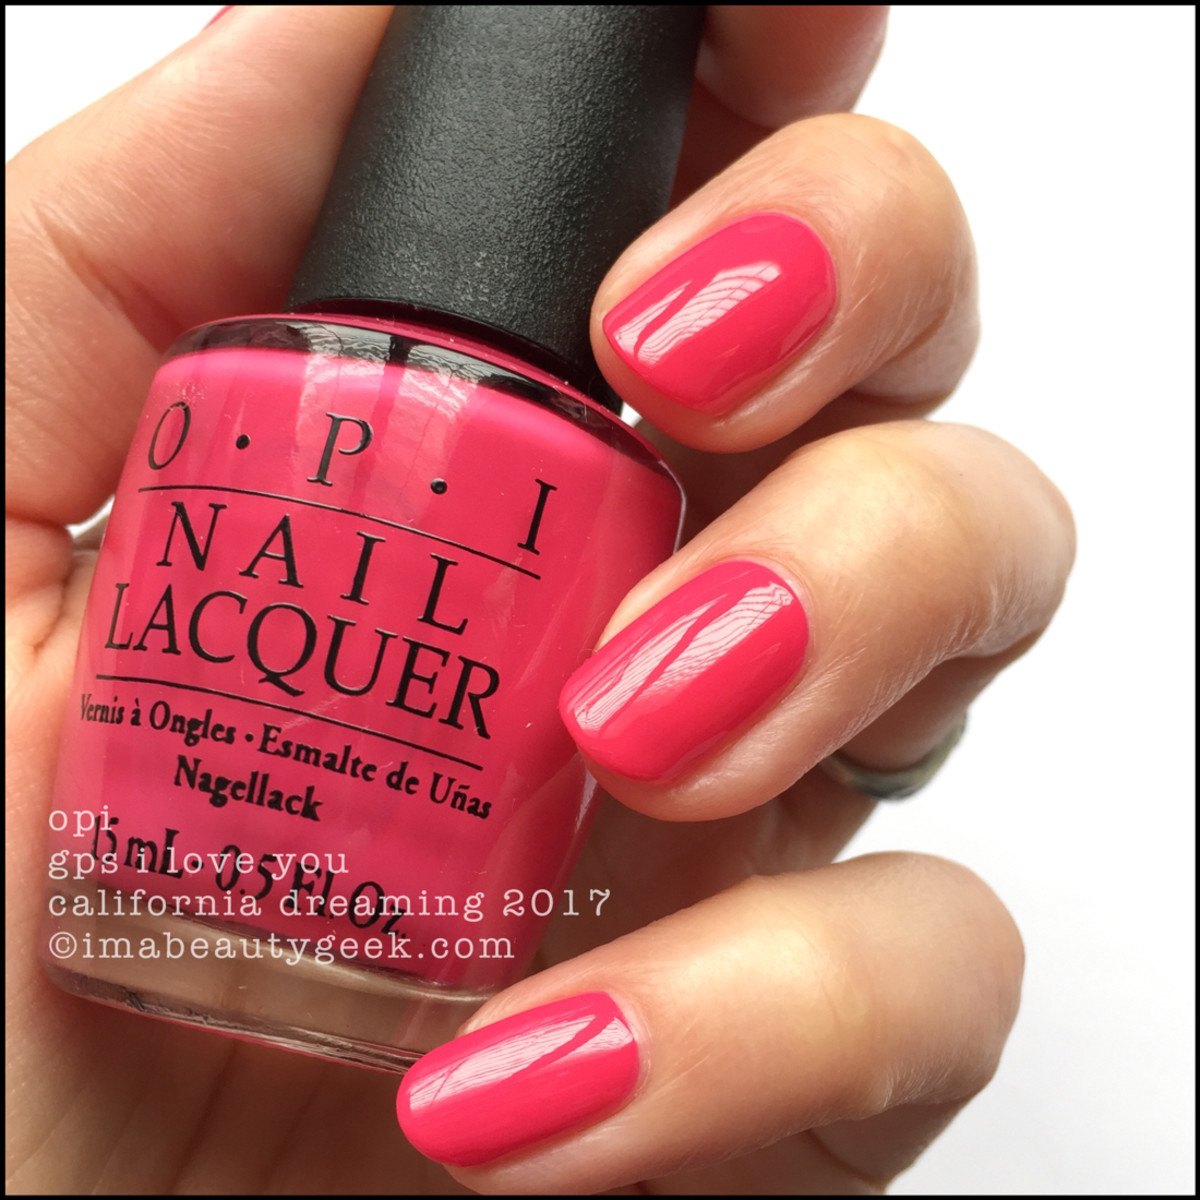 OPI GPS I Love You _ OPI California Dreaming Collection Swatches 2017